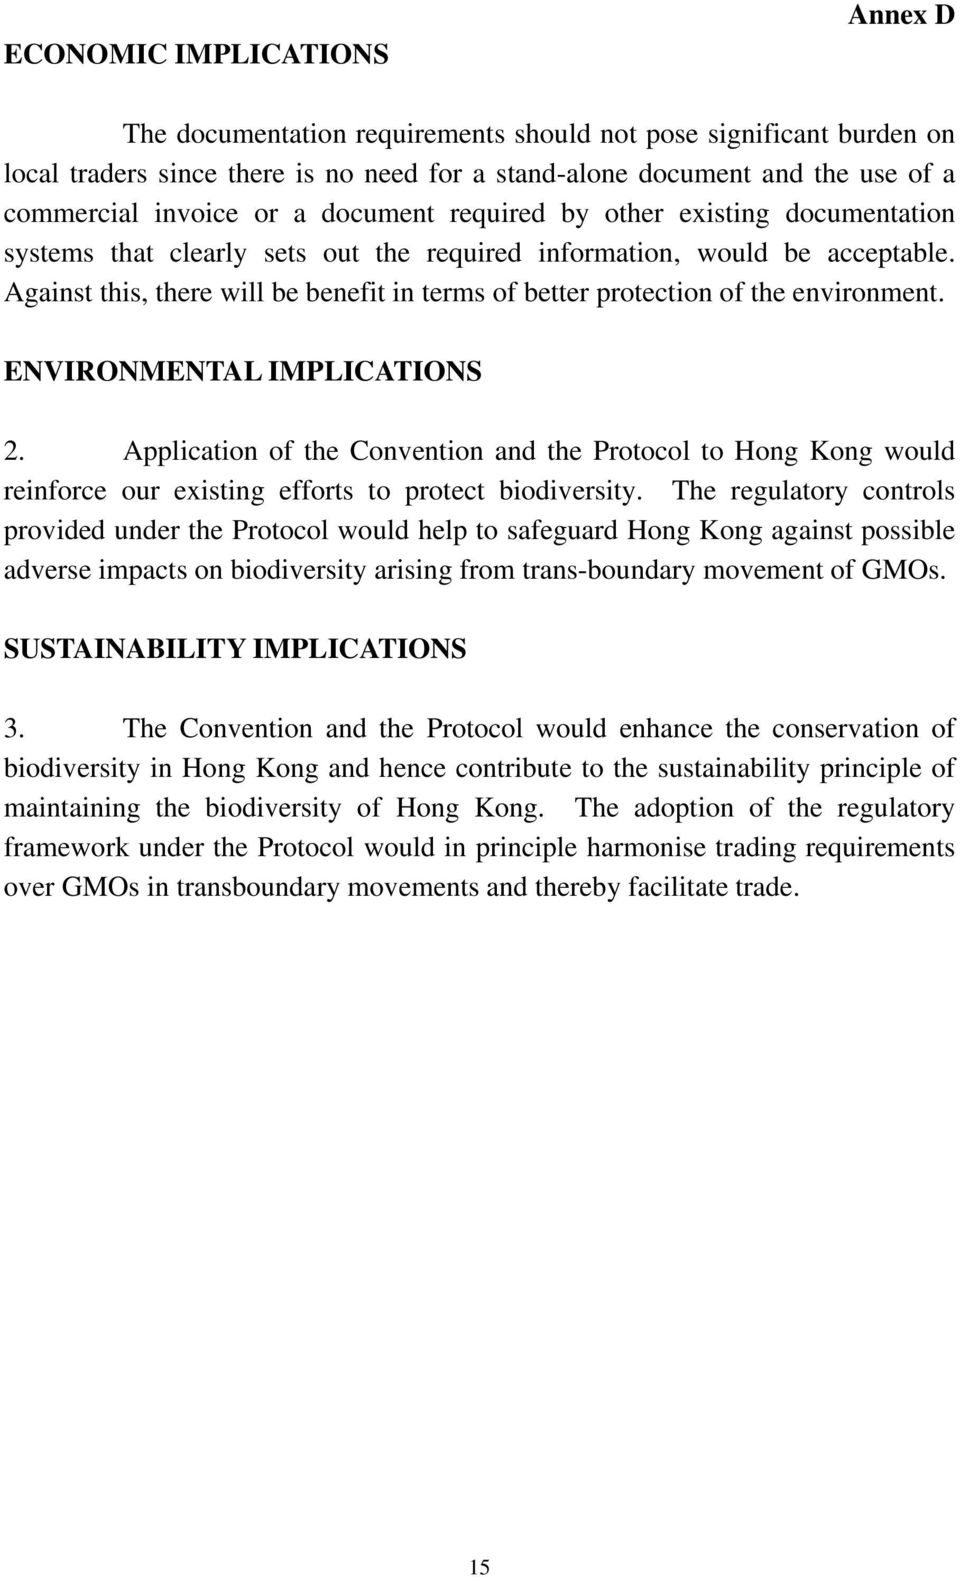 Against this, there will be benefit in terms of better protection of the environment. ENVIRONMENTAL IMPLICATIONS 2.